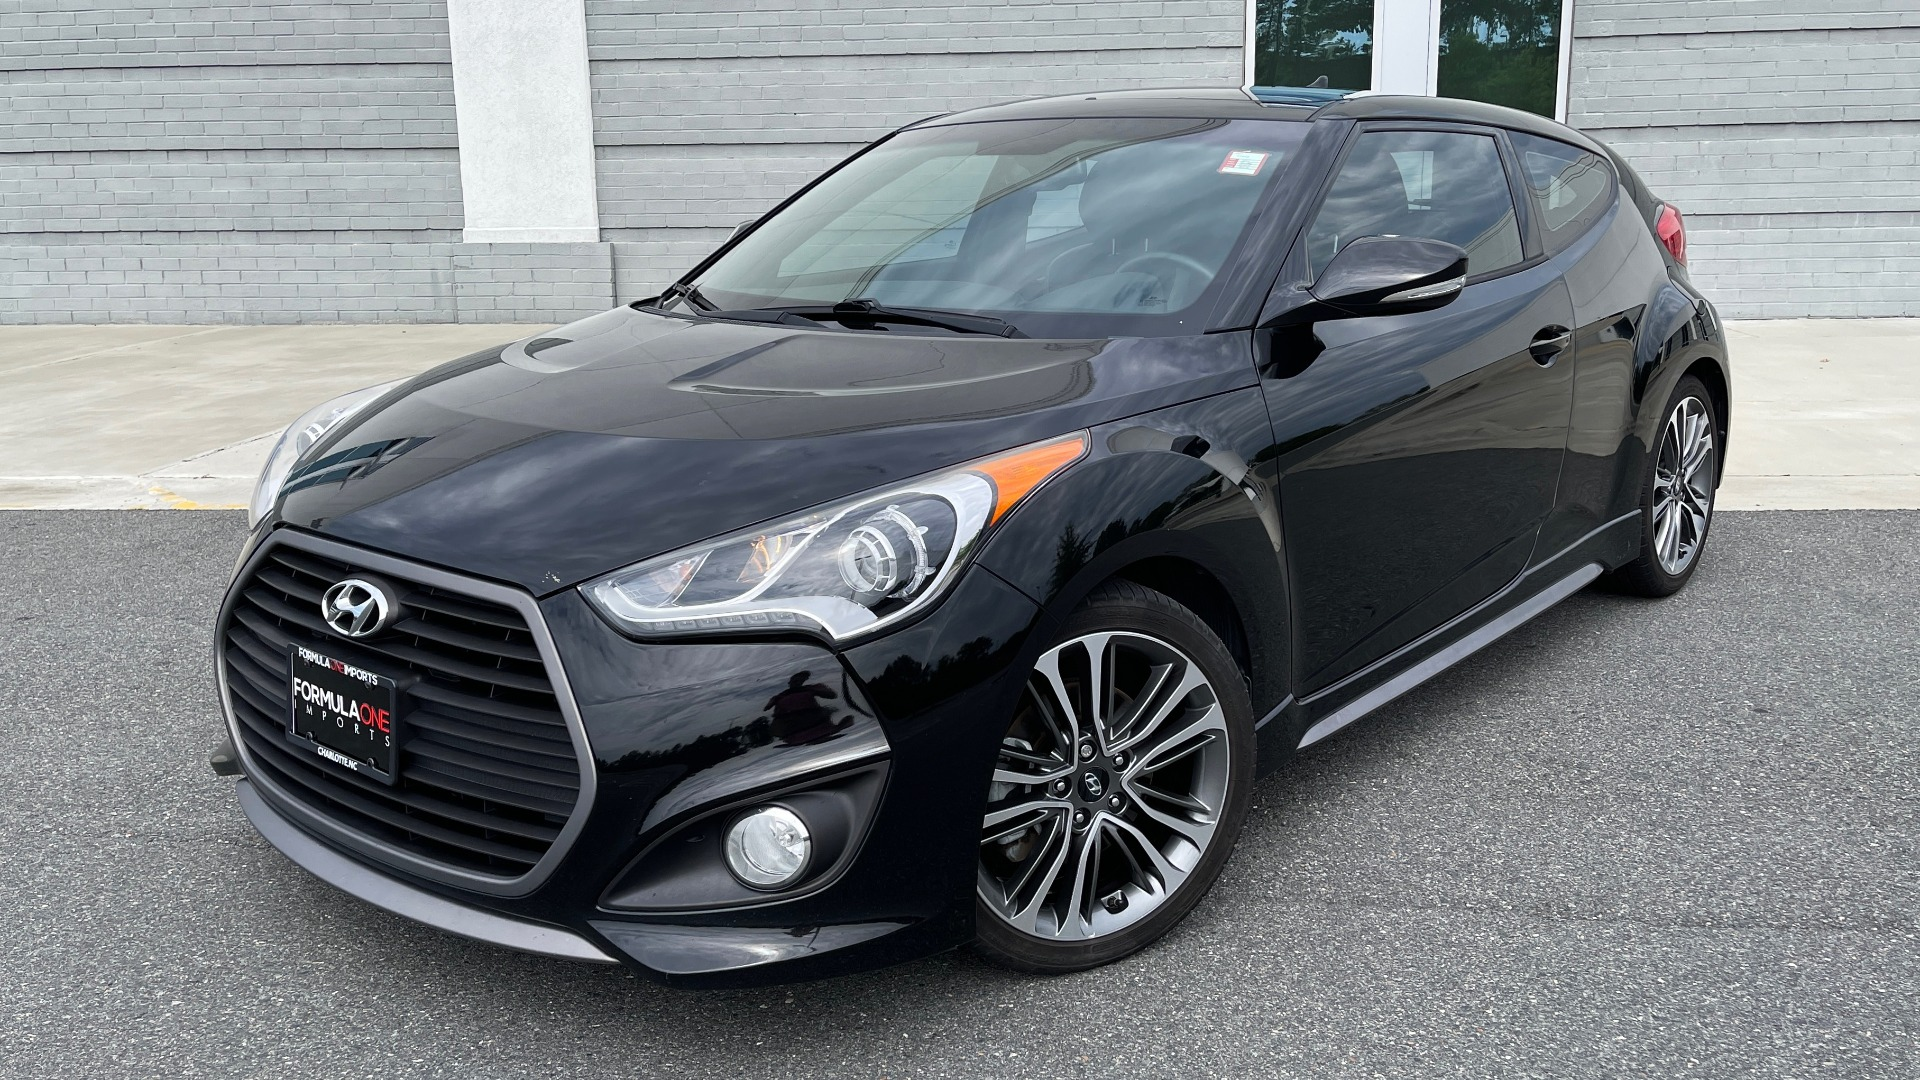 Used 2016 Hyundai VELOSTER TURBO 1.6L / AUTO / NAV / PANO-ROOF / REARVIEW for sale Sold at Formula Imports in Charlotte NC 28227 1